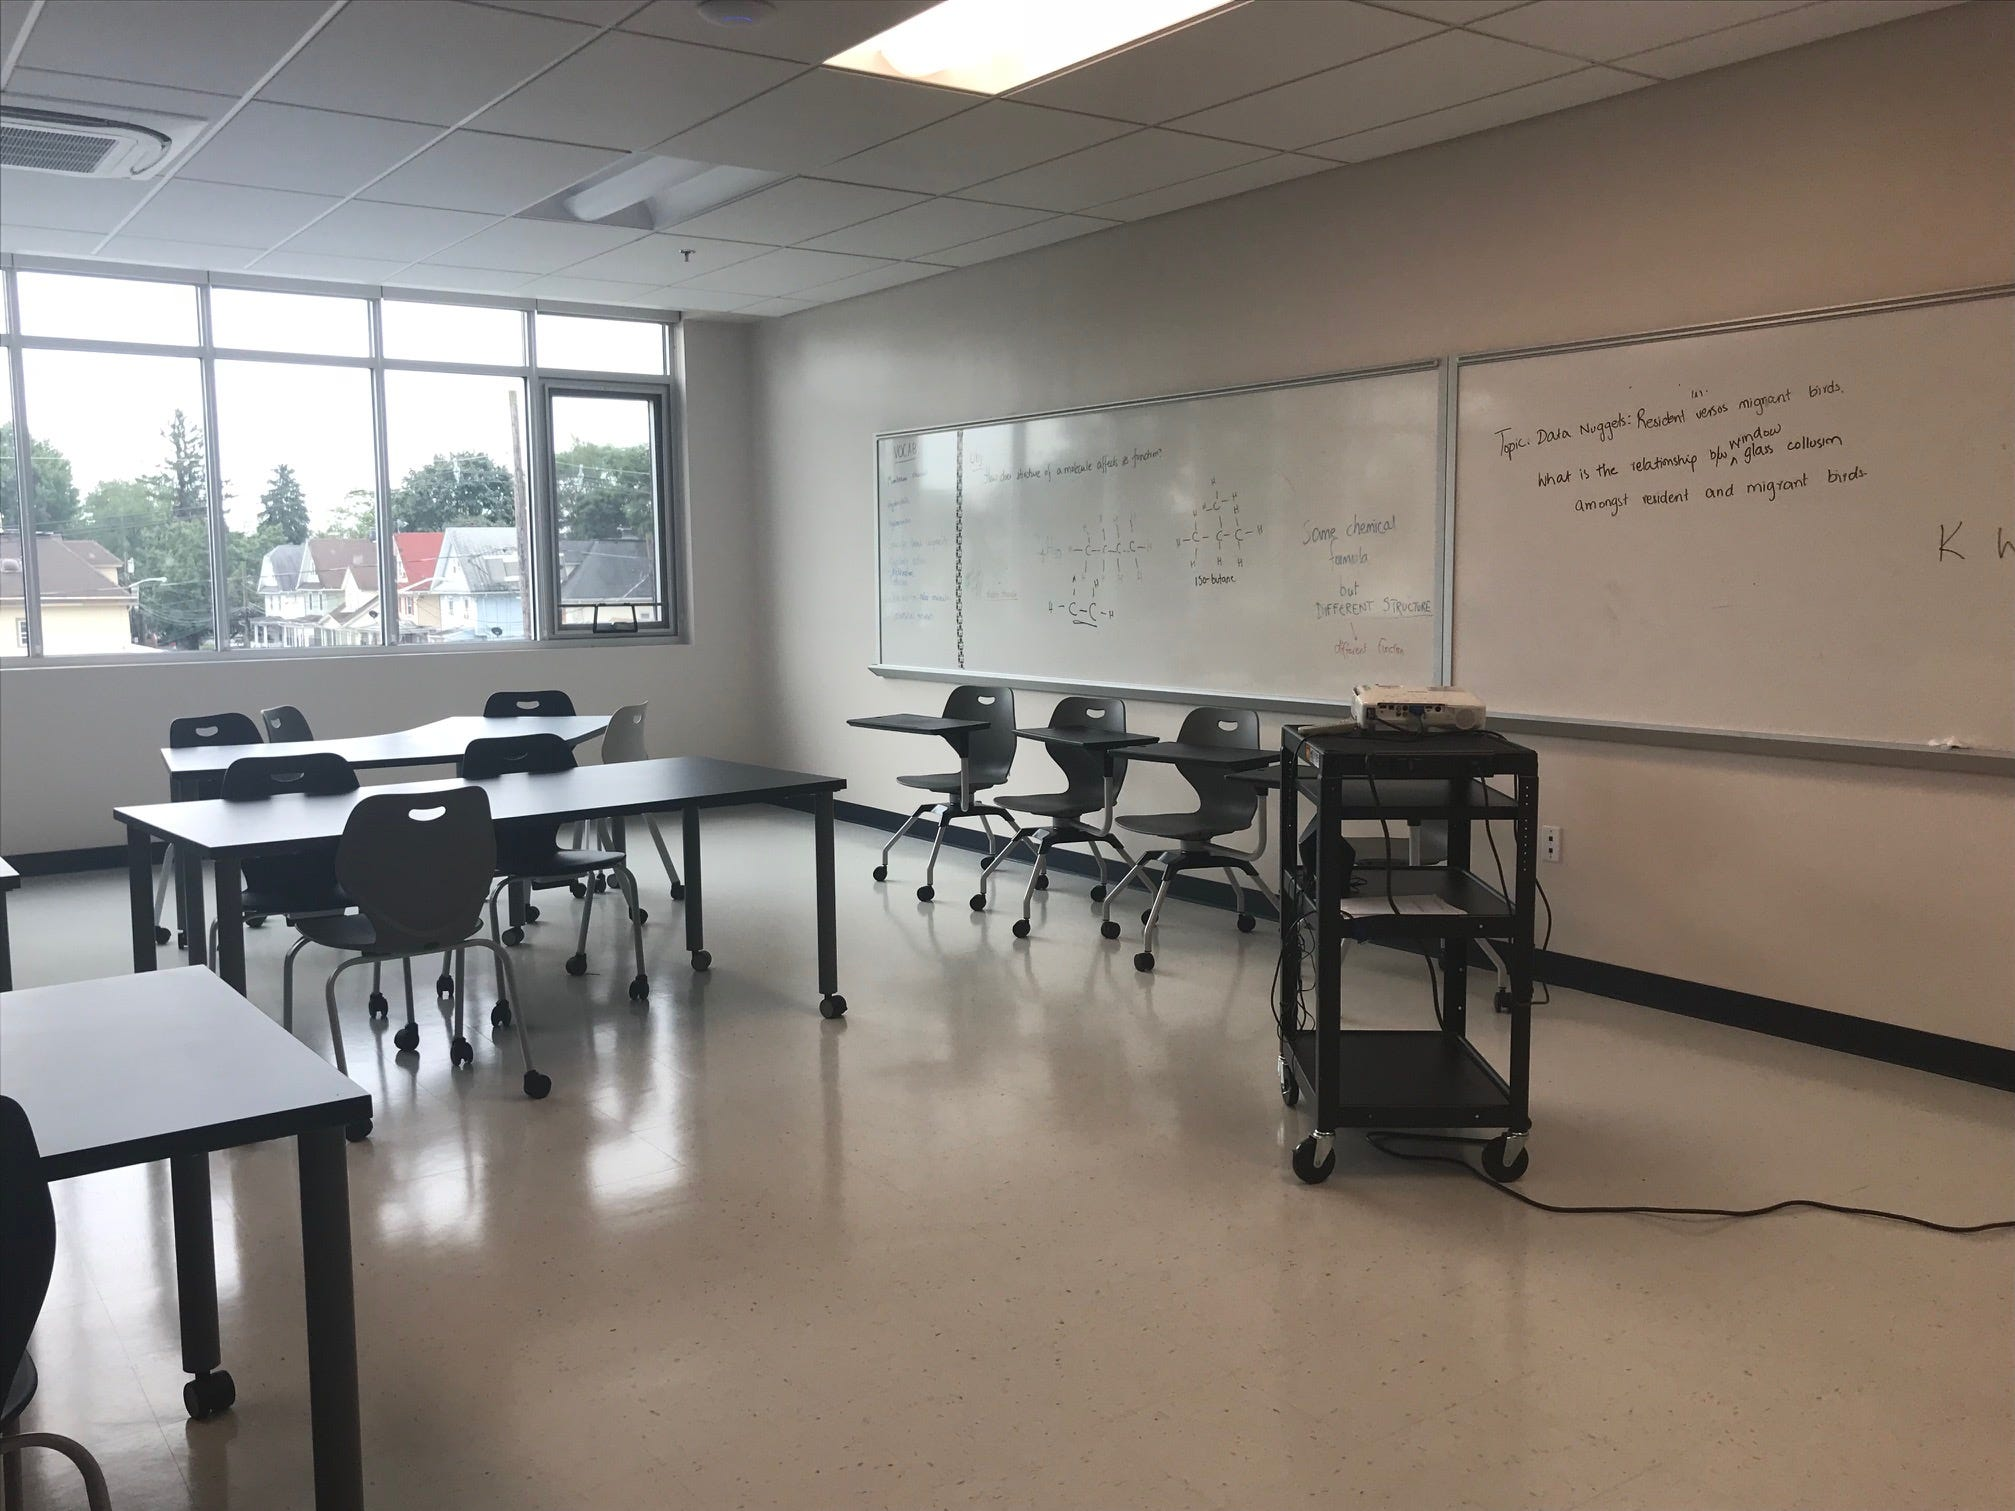 With fresh, bold blue paint on its pristine walls, College Achieve CentralHigh School welcomed its first students Aug. 27. More than 300 students from Somerset, Middlesex and Union countieshave been enrolled in the charter high school.